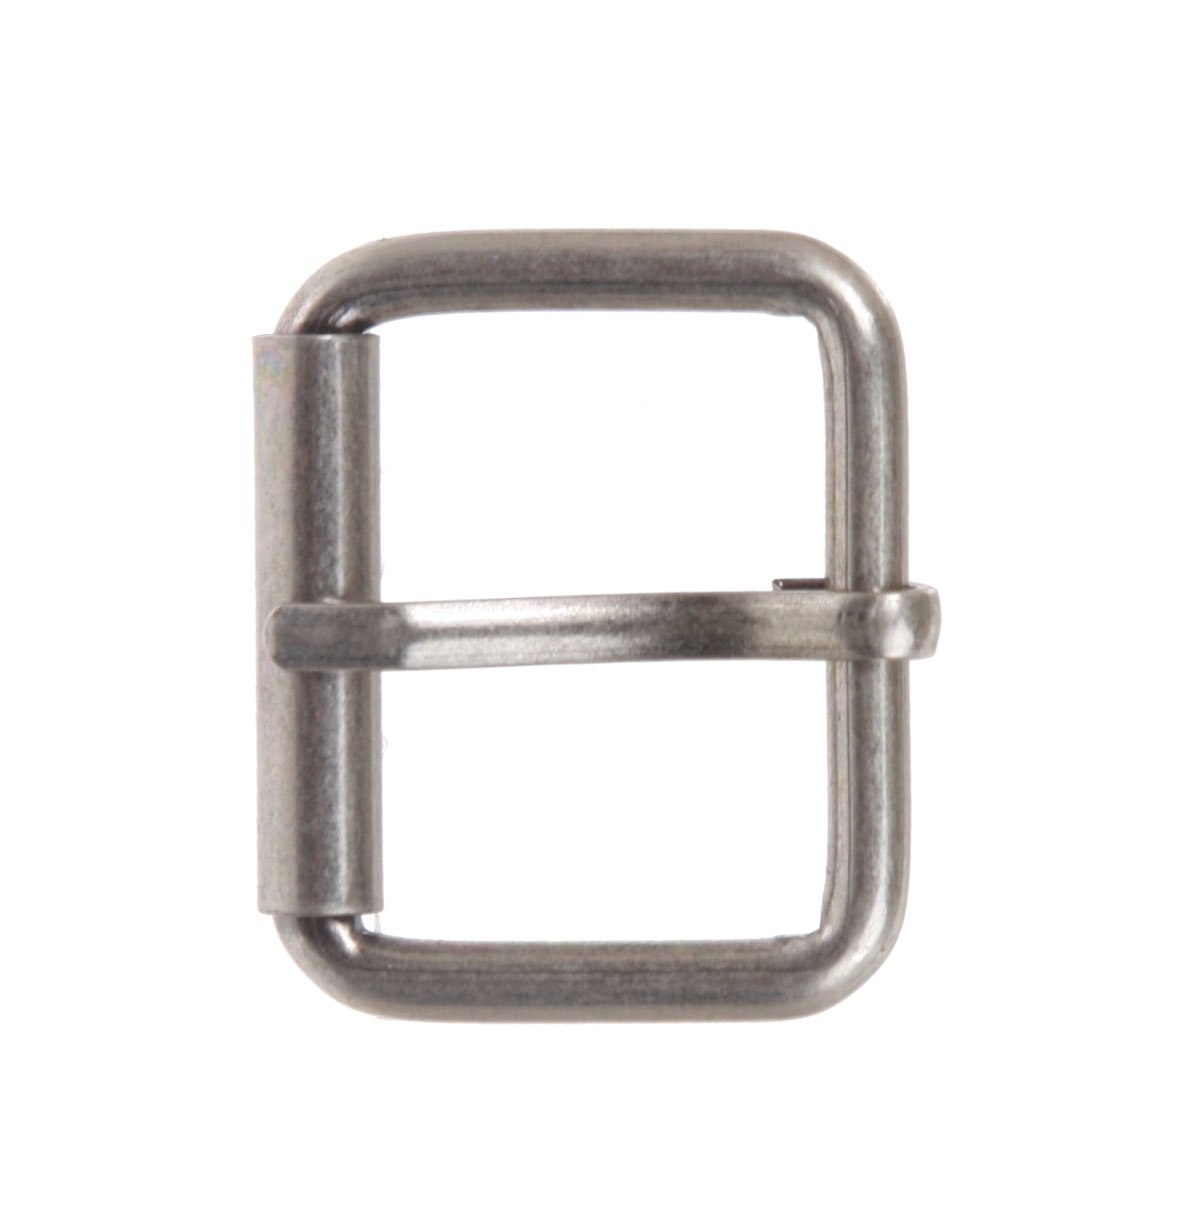 Nickel Free Single Prong Roller Belt Buckle 1 1//8 Antique Silver 30 mm